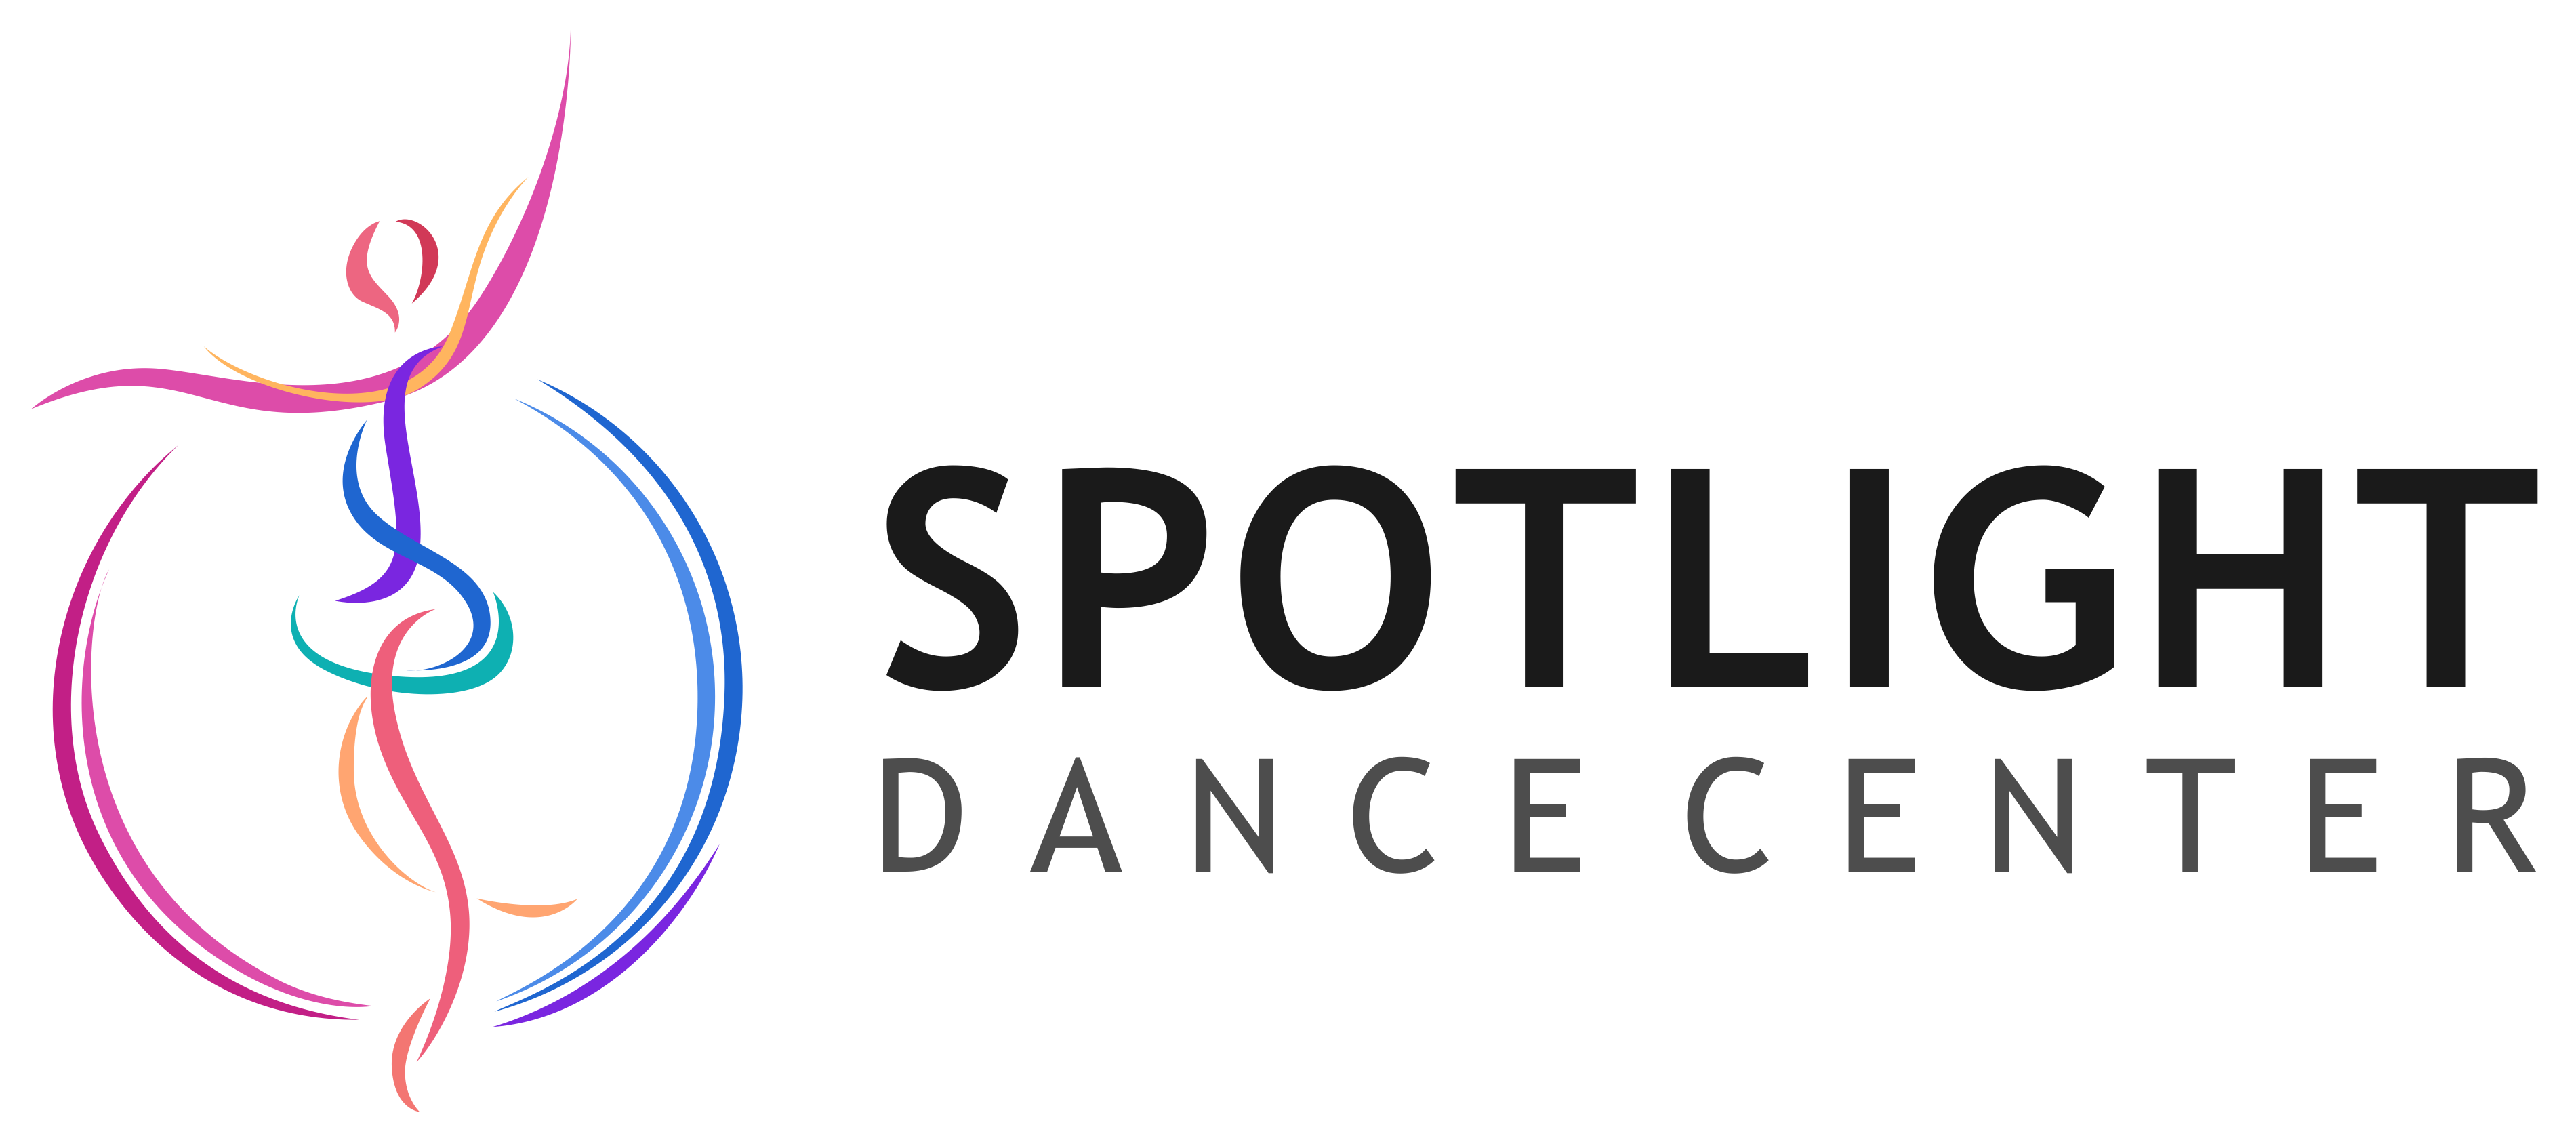 Spotlight Dance Center